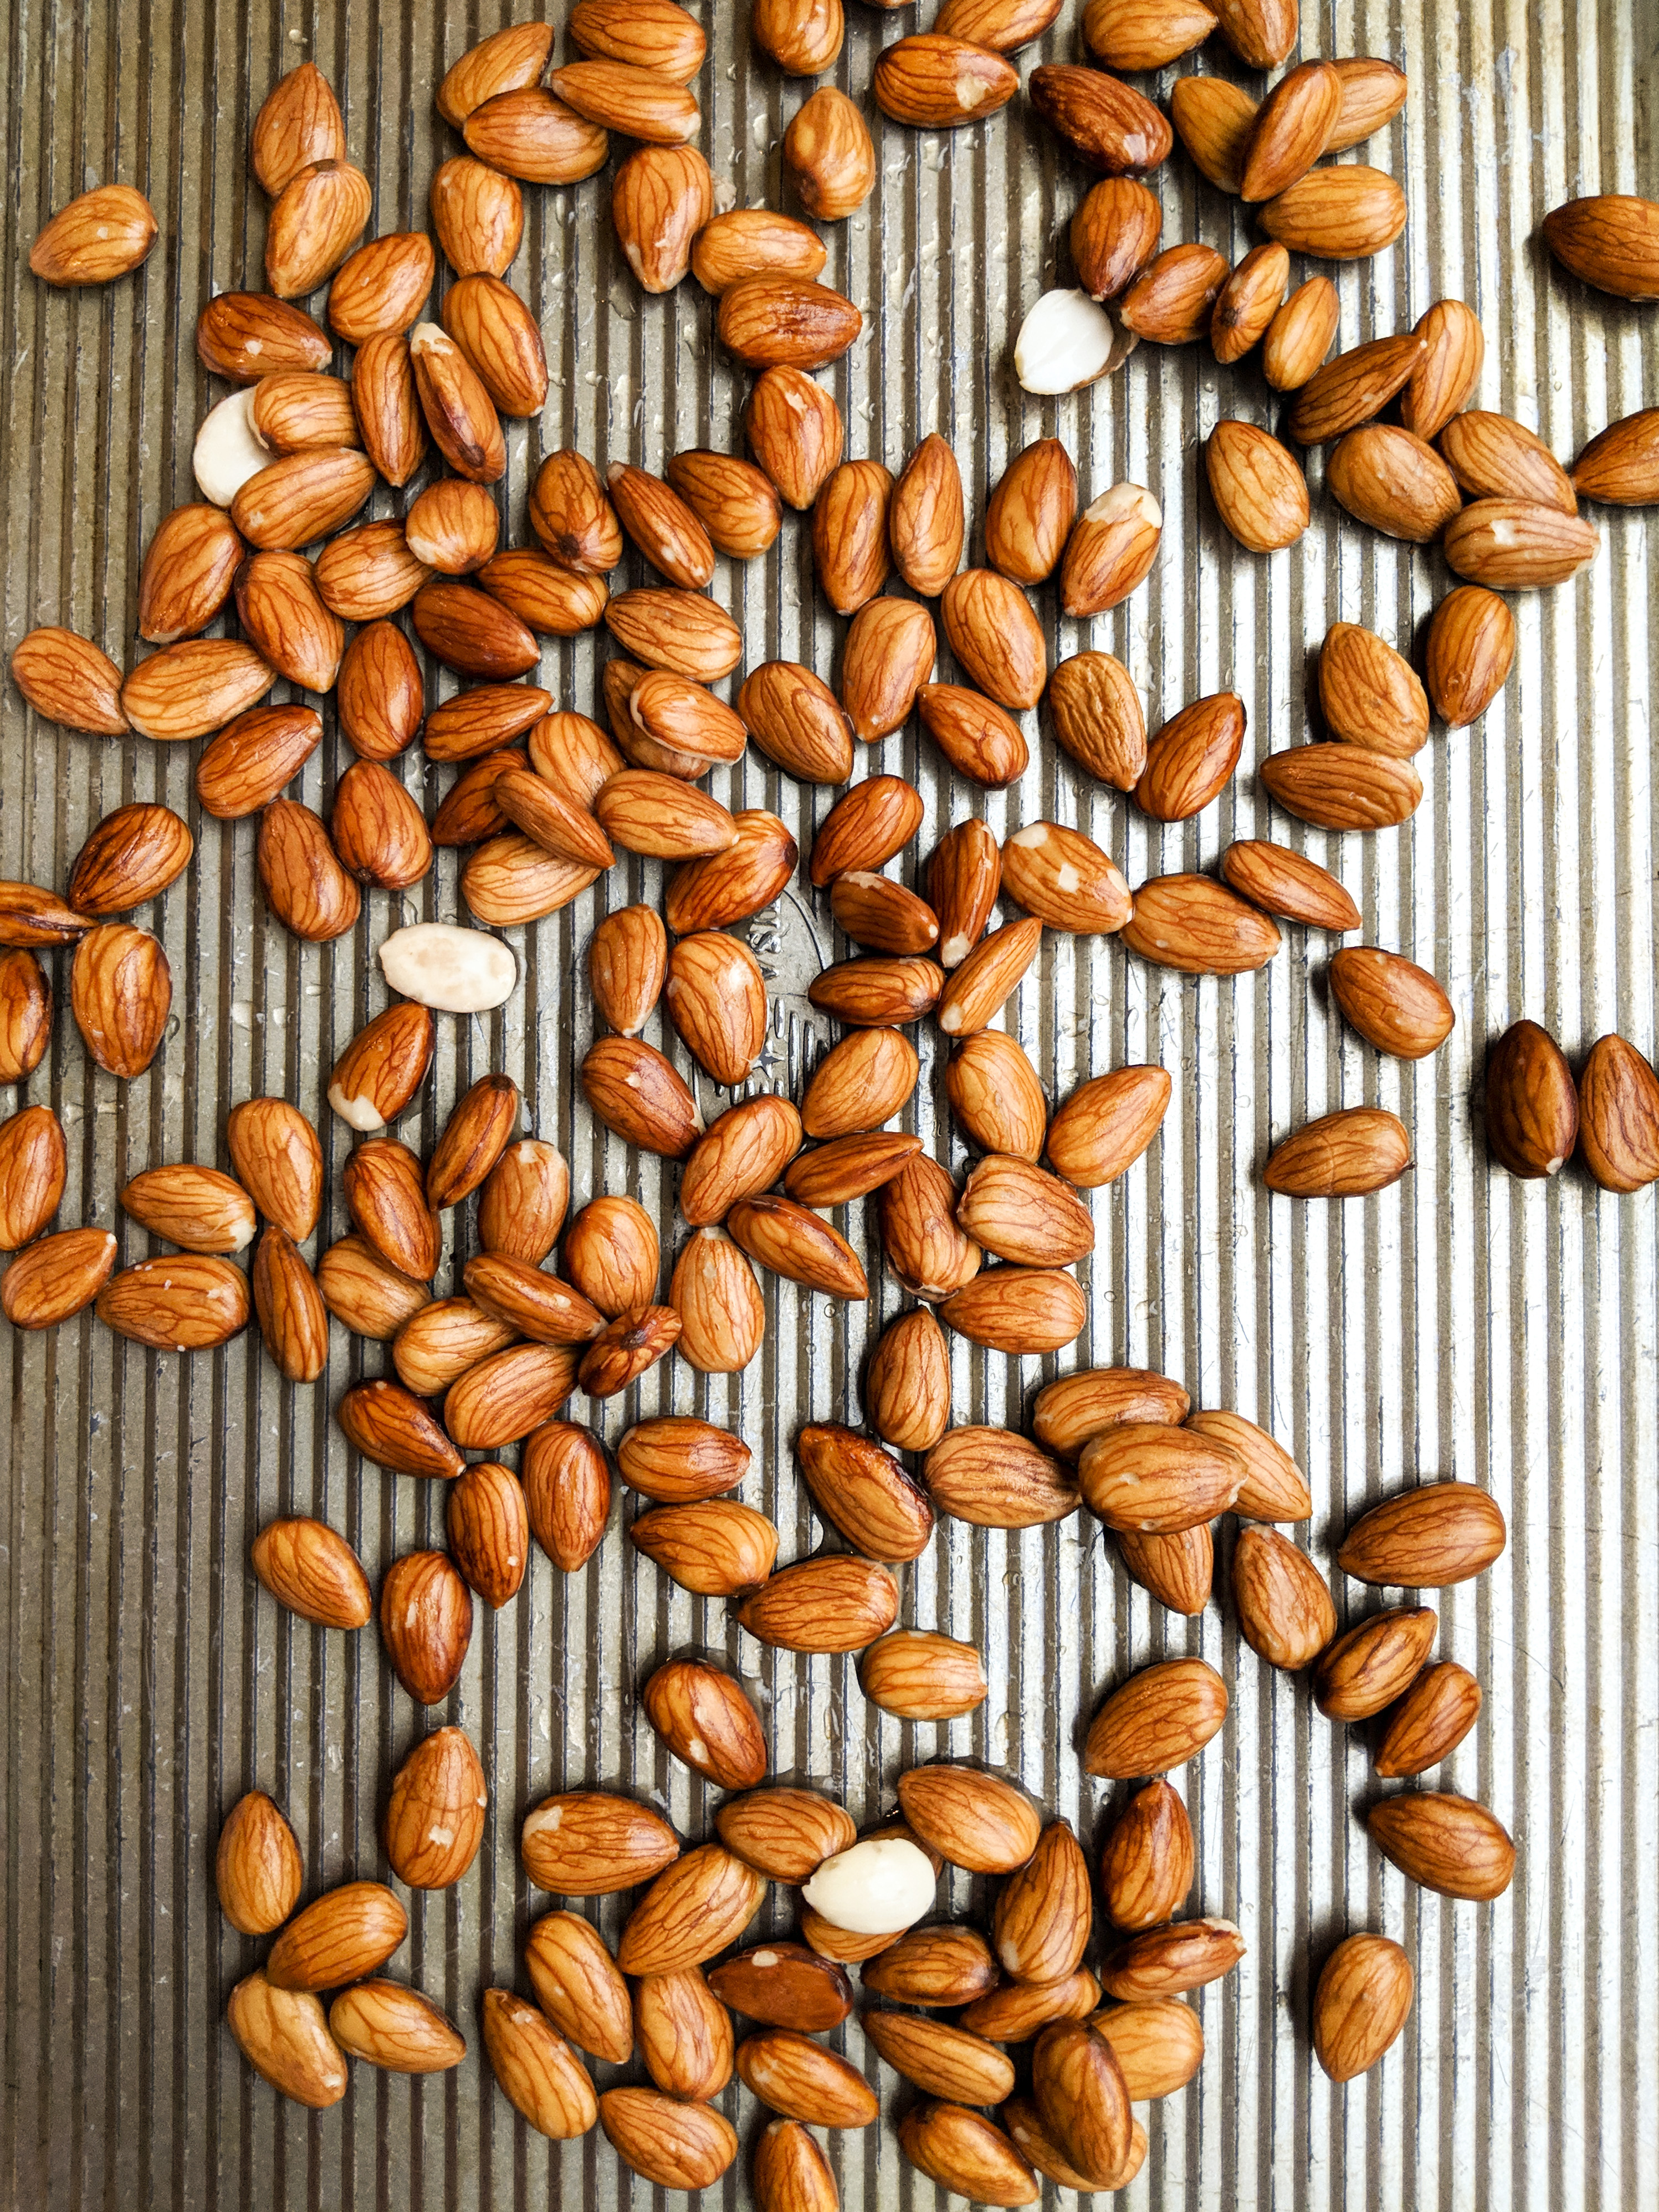 Raw almonds and how to prepare them for the Plant Paradox diet.